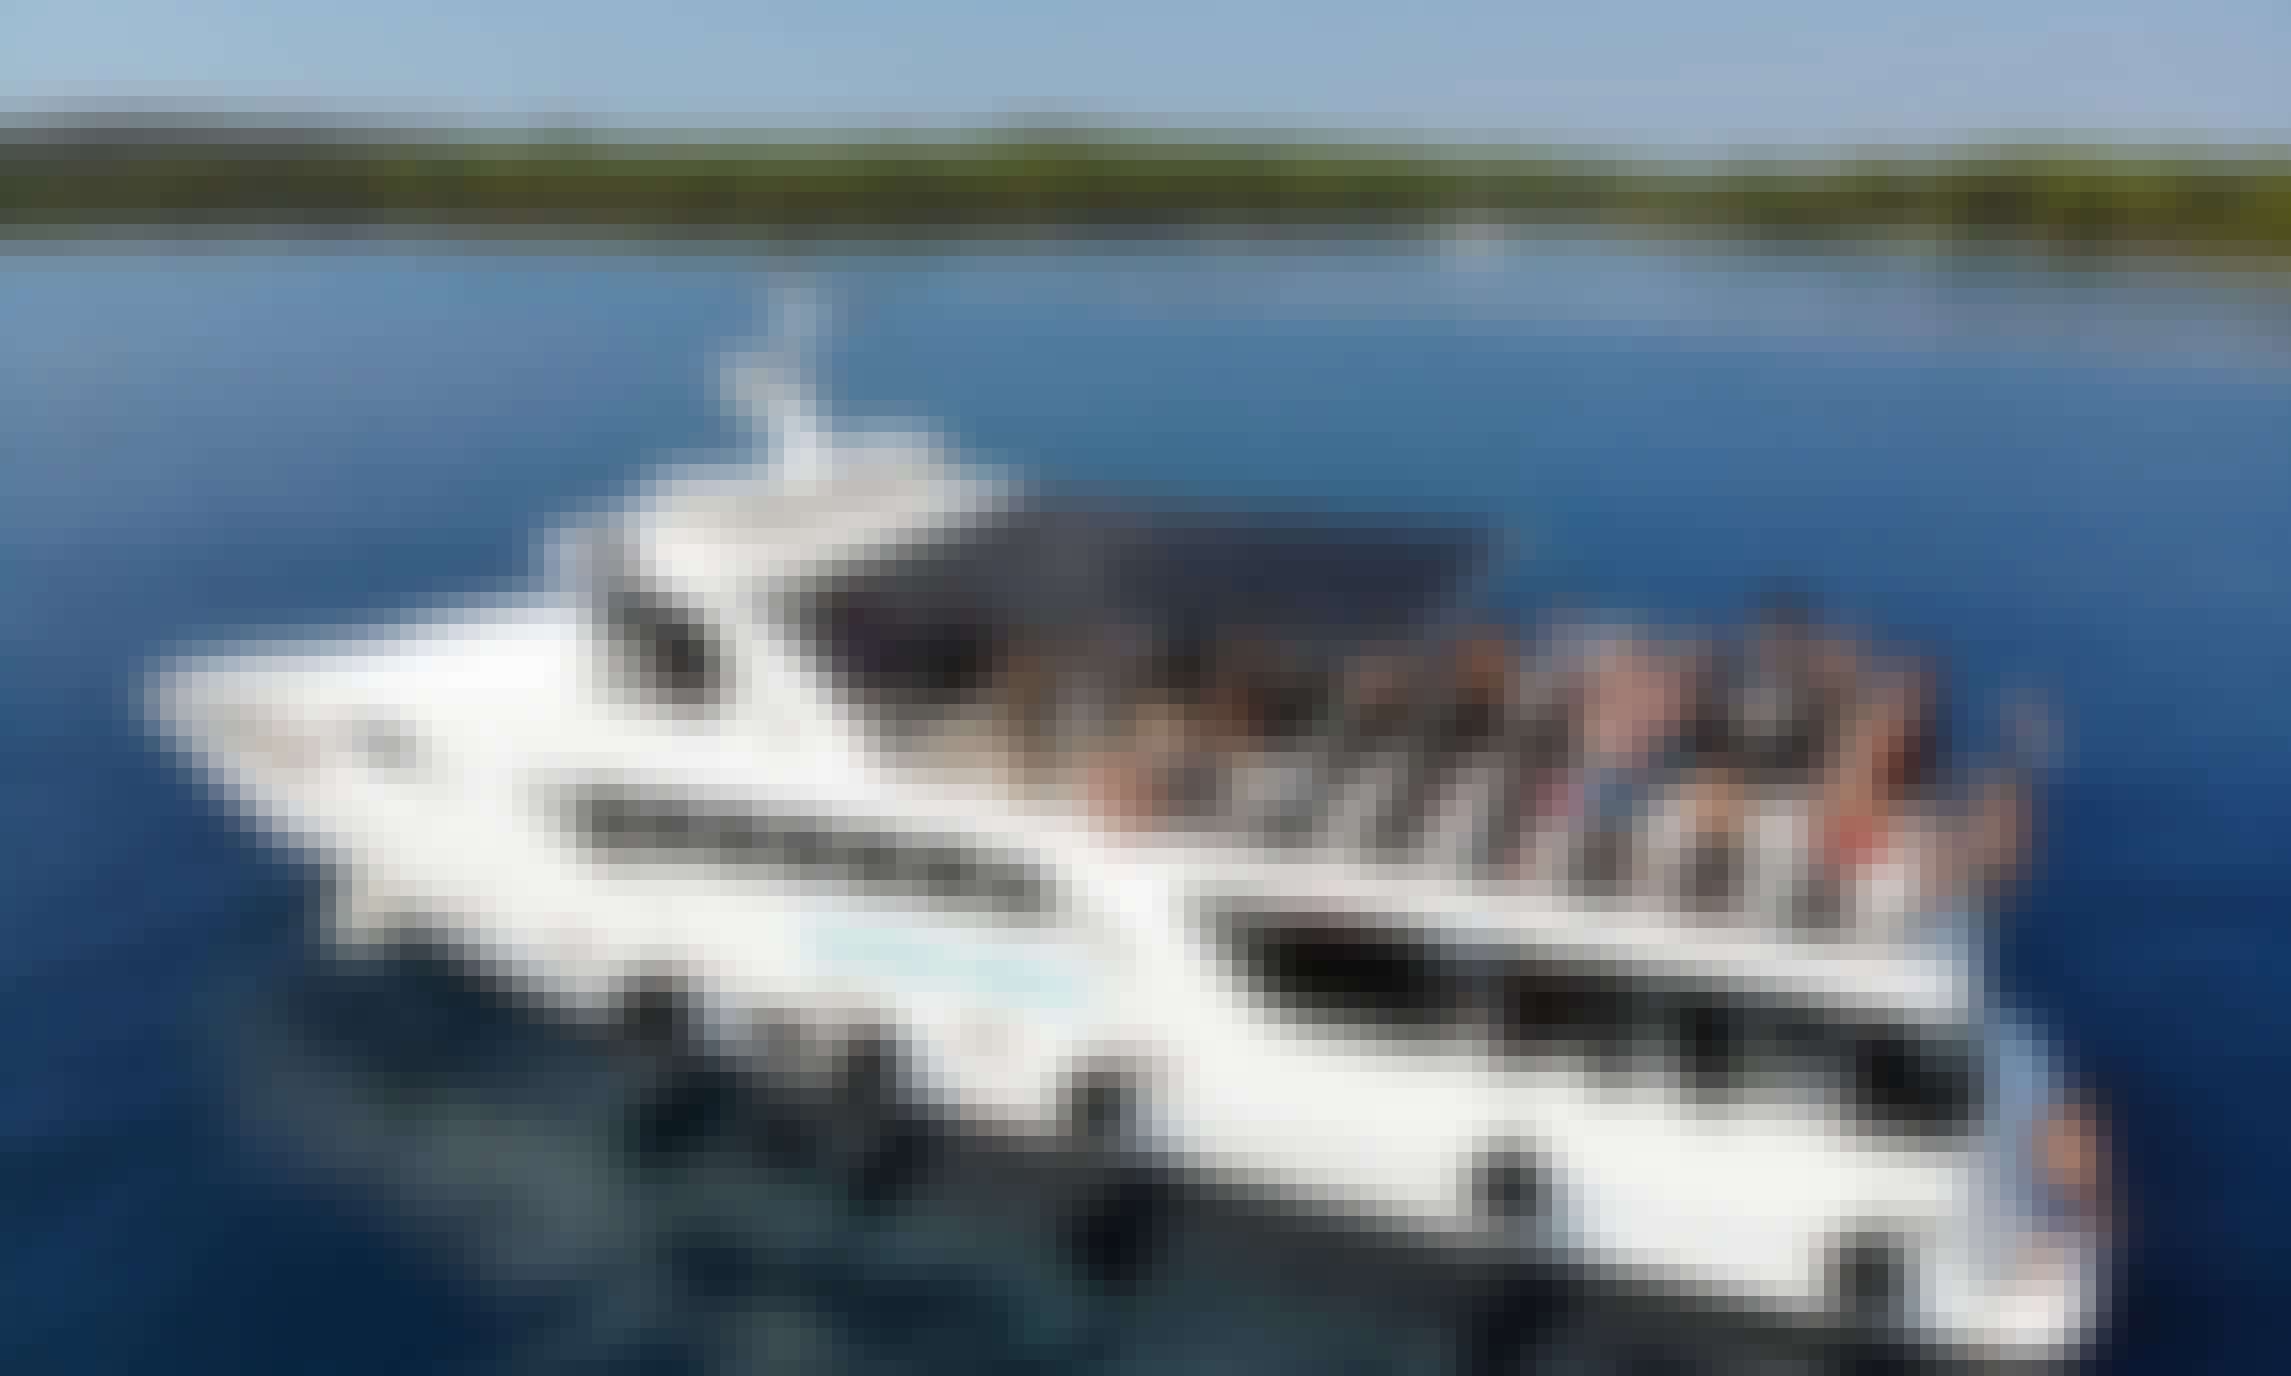 82' Passenger Boat With Captain and Crew Ready To Serve You In Zadar, Croatia